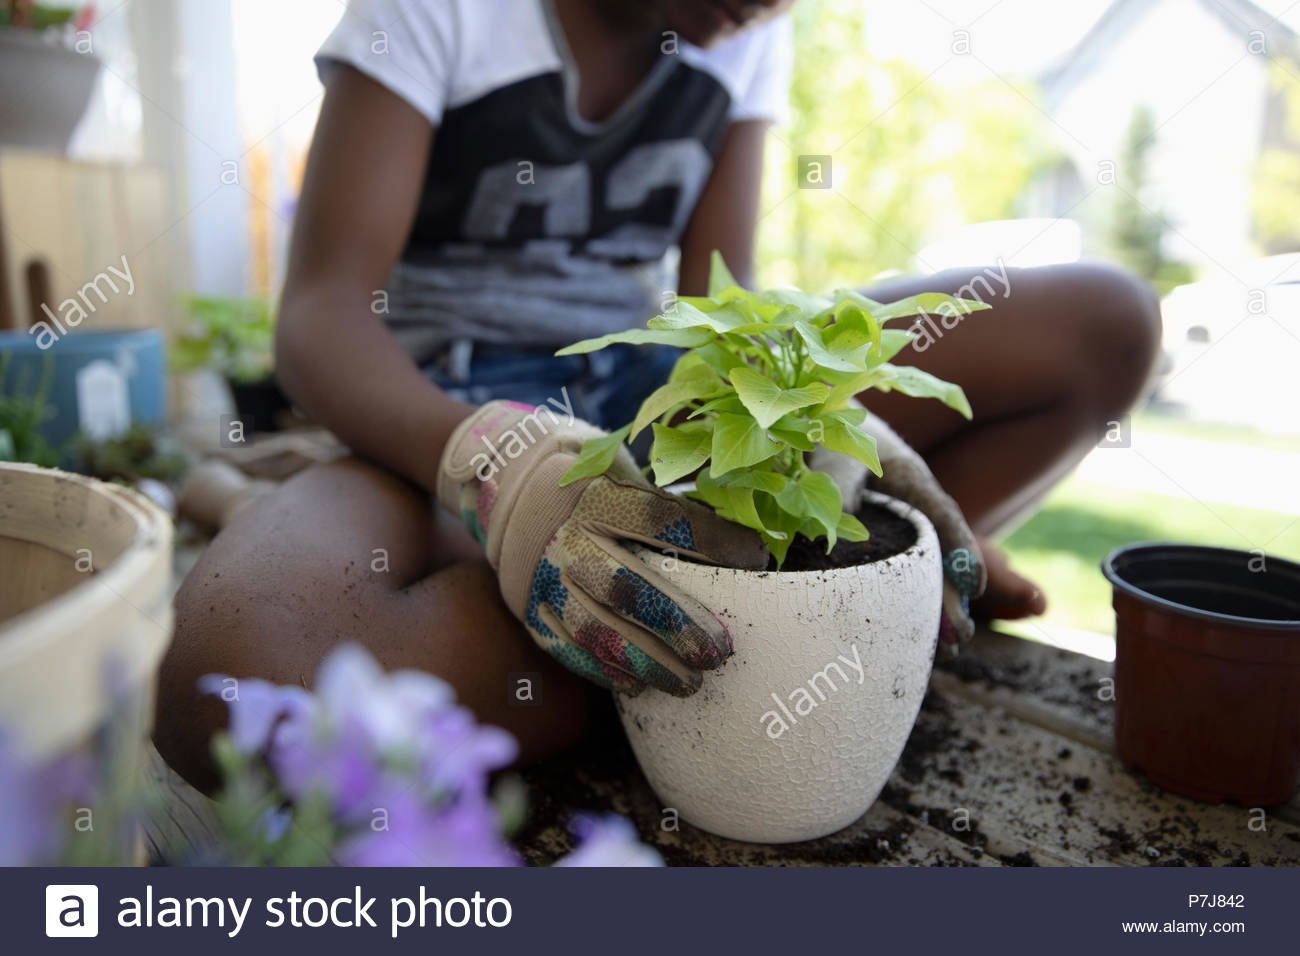 Barefoot Tween Girl Stockfotos & Barefoot Tween Girl Bilder - Alamy